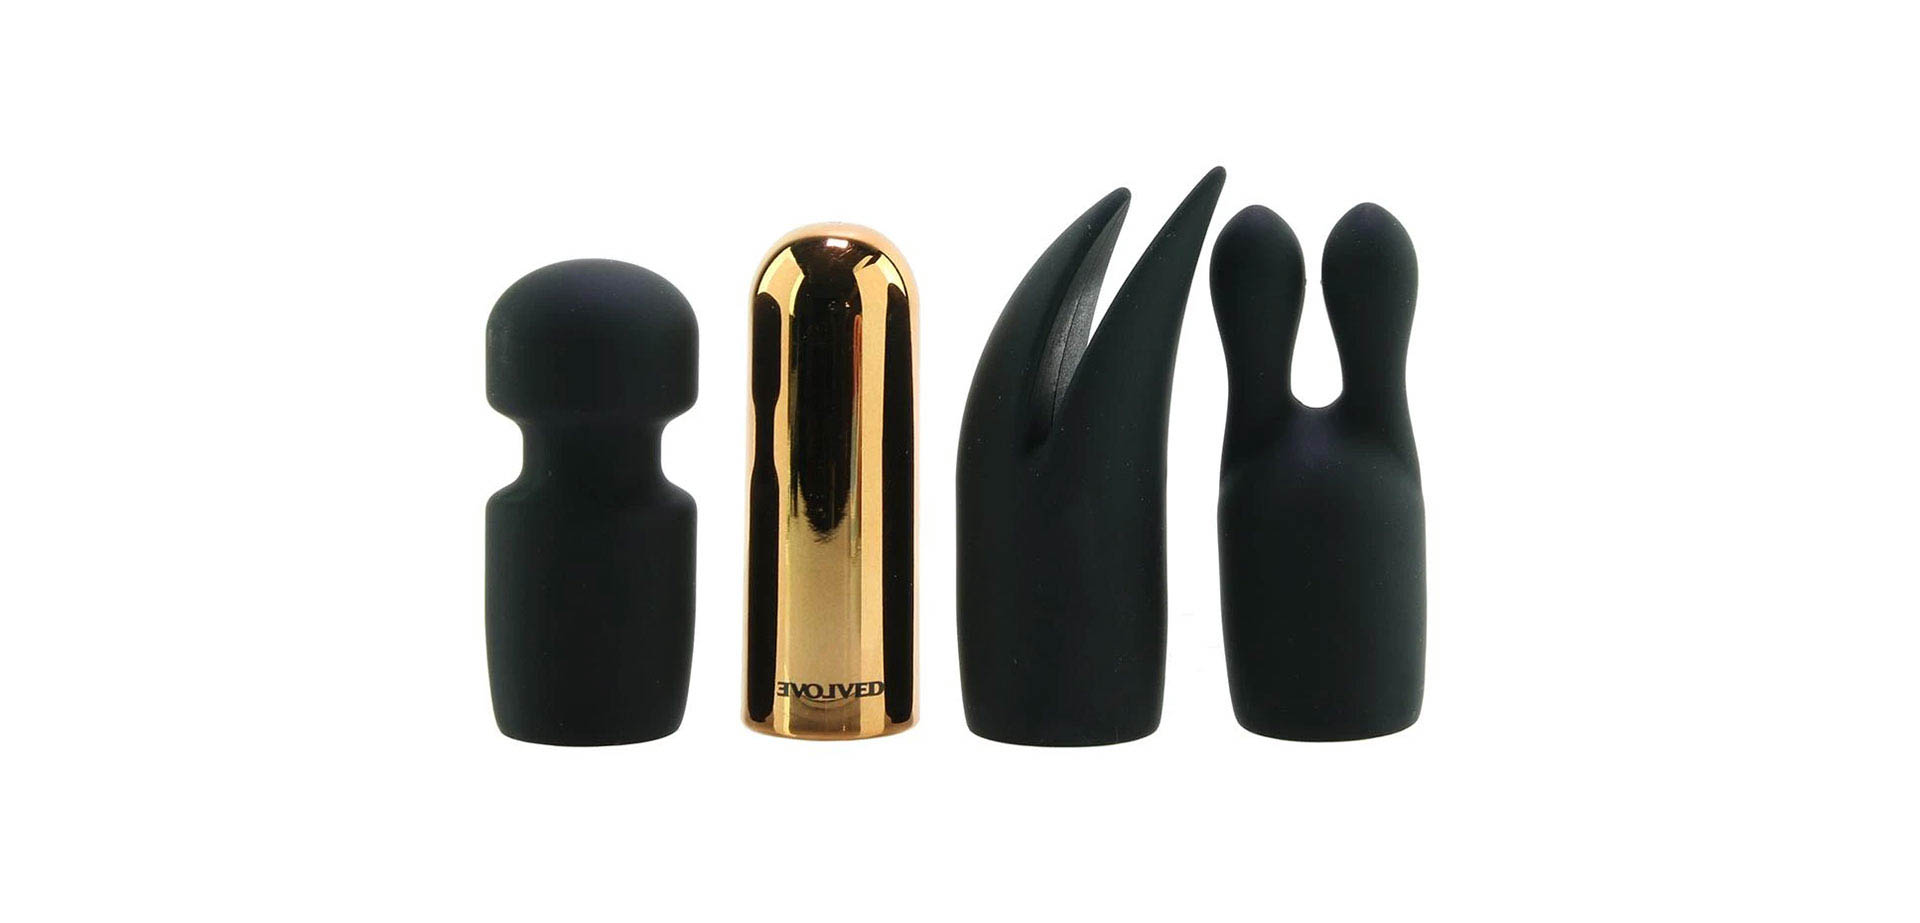 Powerful Bullet Vibrator.